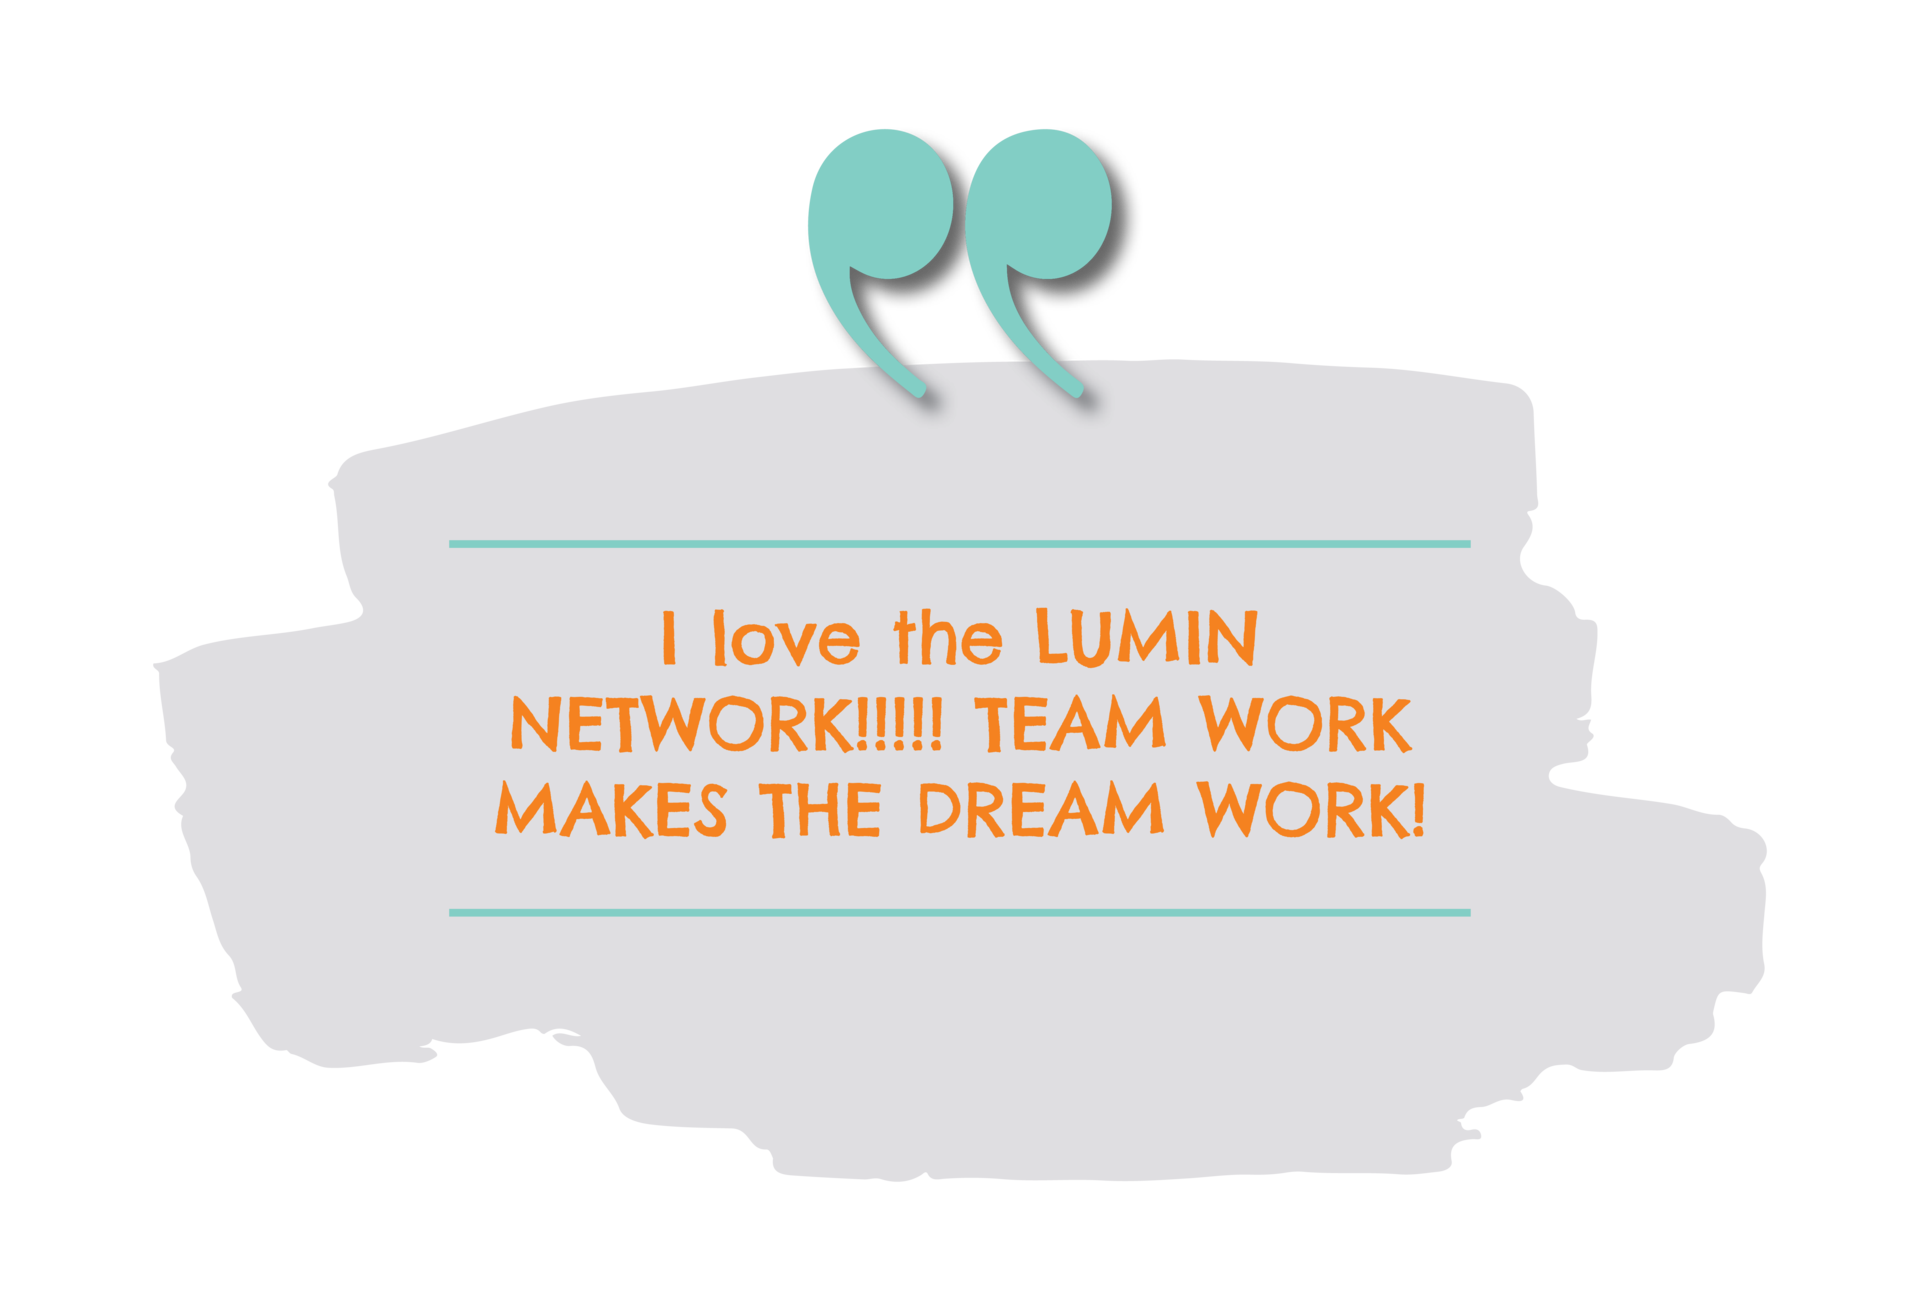 I love the LUMIN NETWORK!!!!! TEAM WORK MAKES THE DREAM WORK!